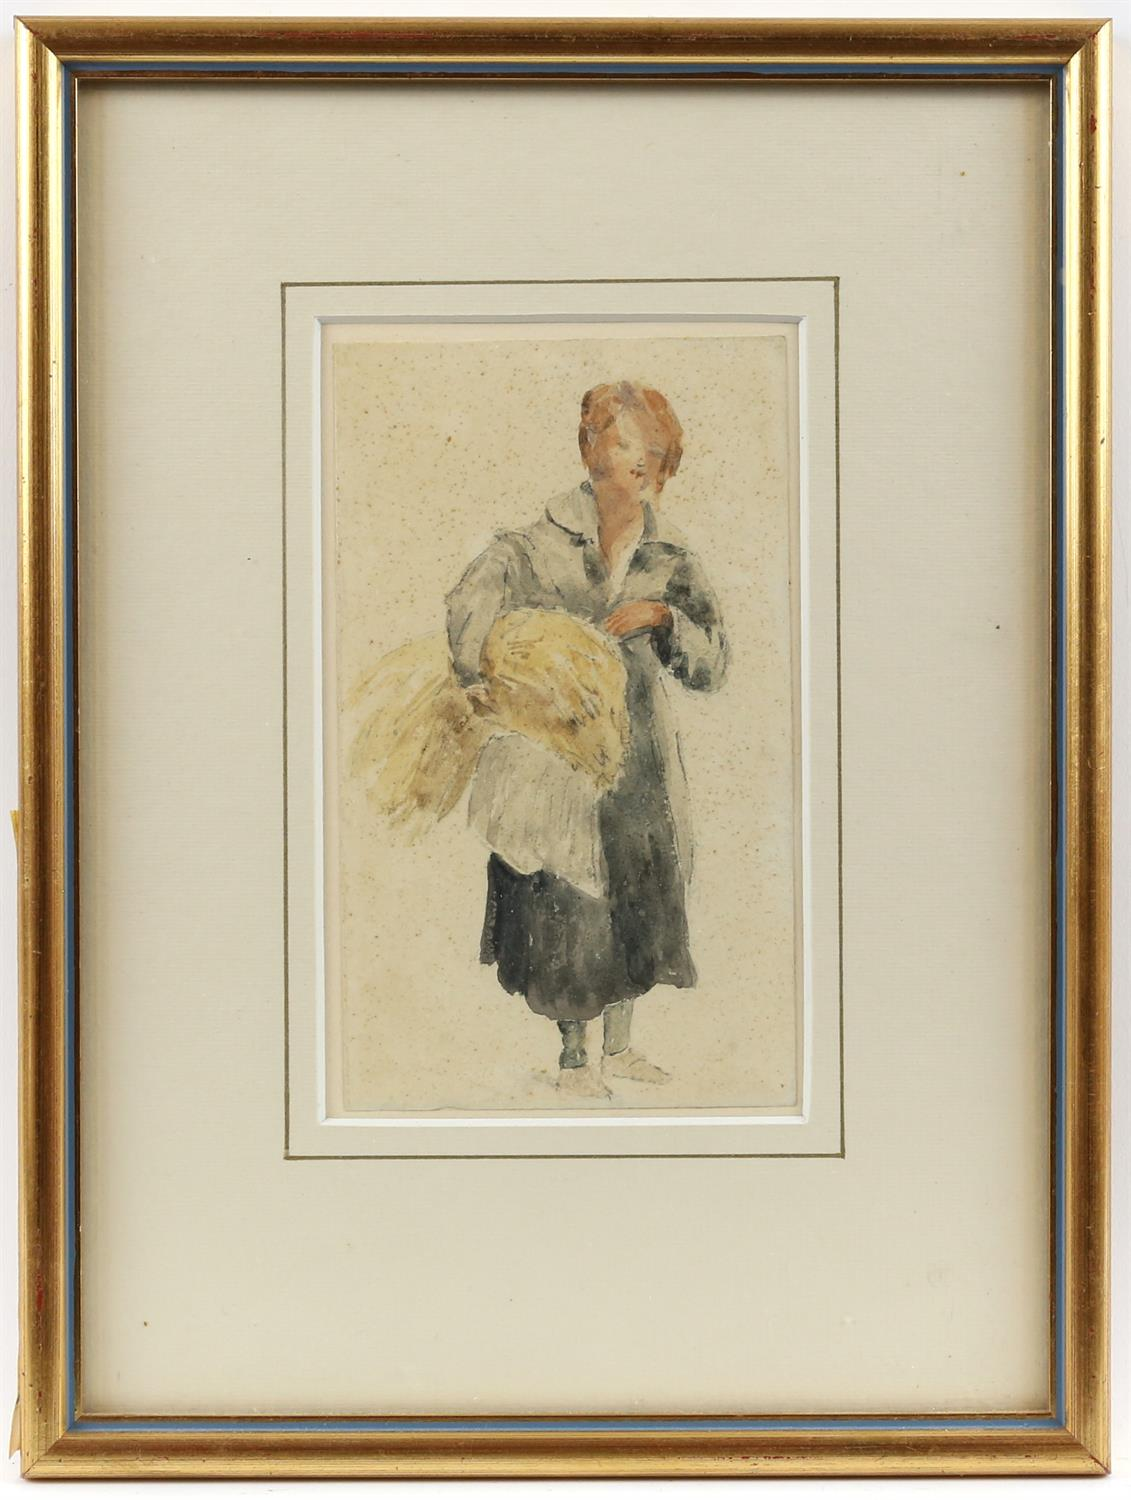 19th century English School, young woman carrying a sheath of corn, watercolour, 17.5cm x 10cm, - Image 2 of 3